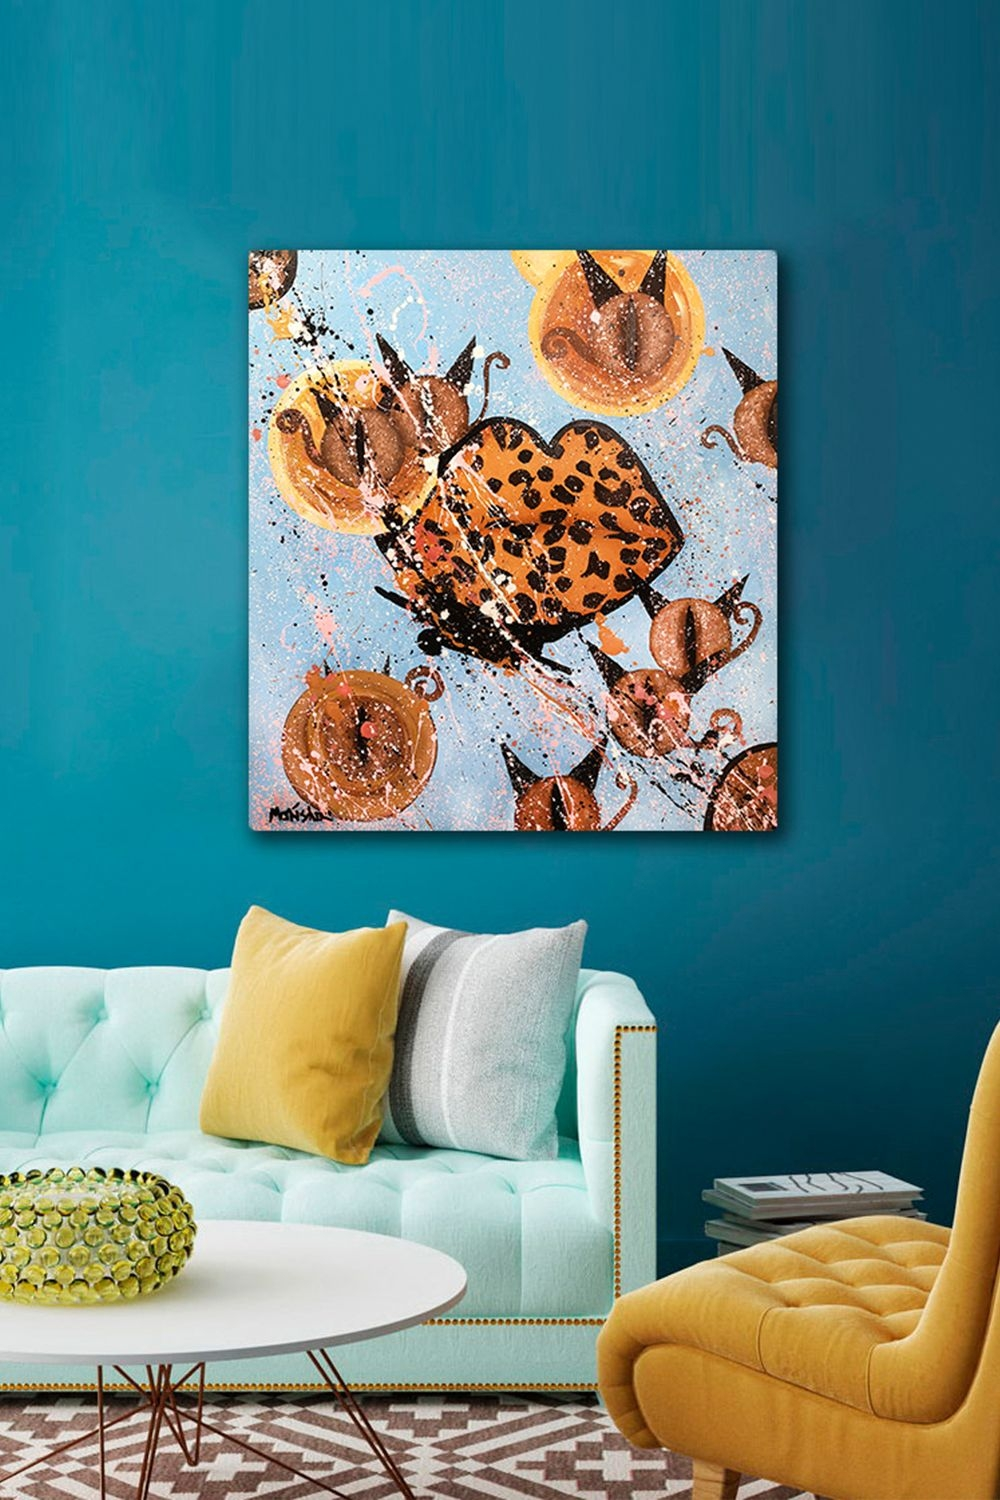 Appealing Modern Artwork for Living Room On Stunning Contemporary Art Painting Cats and Lips Acrylic On Canvas On Modern Artwork for Living Room